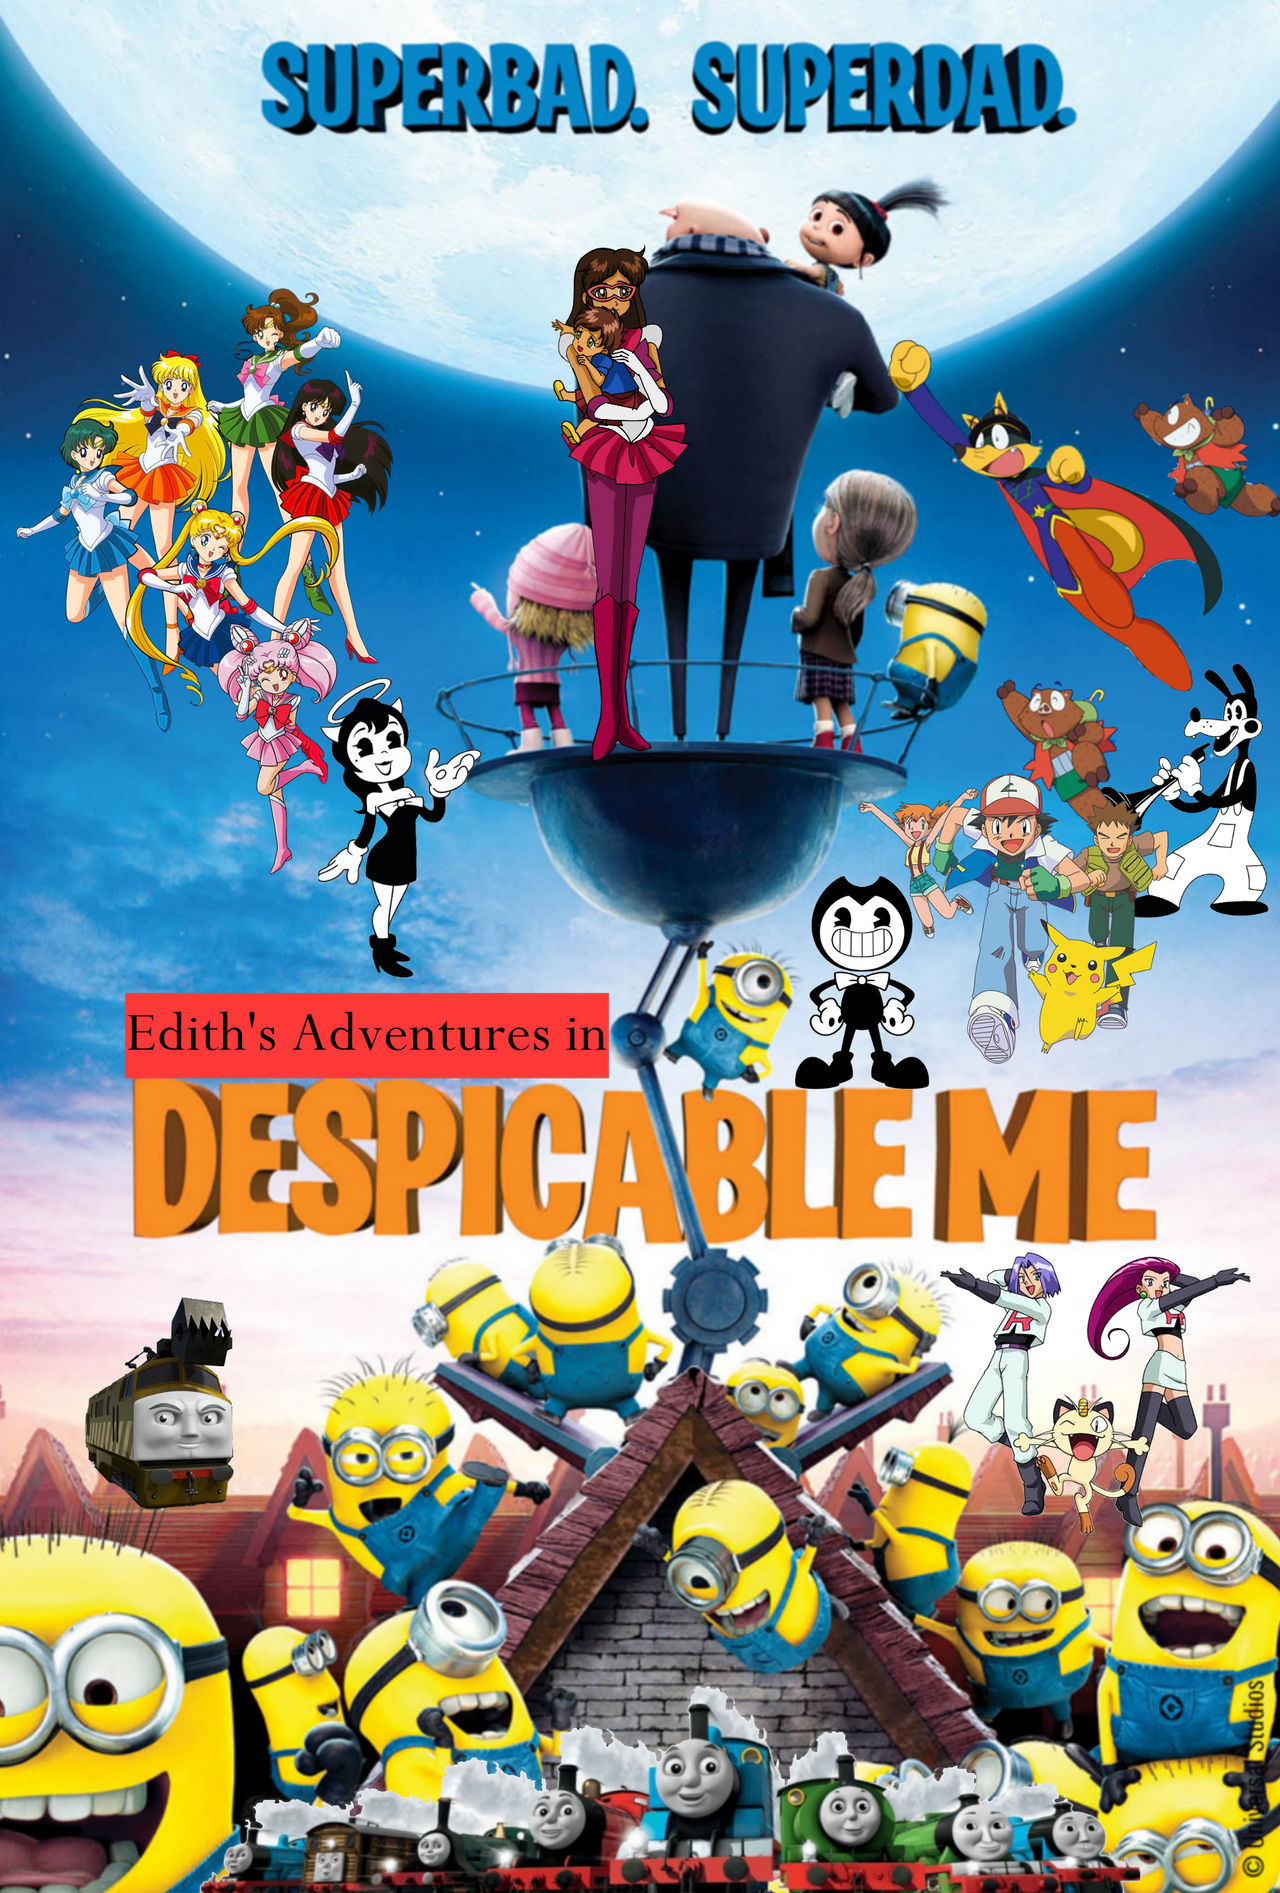 Edith's Adventures in Despicable Me